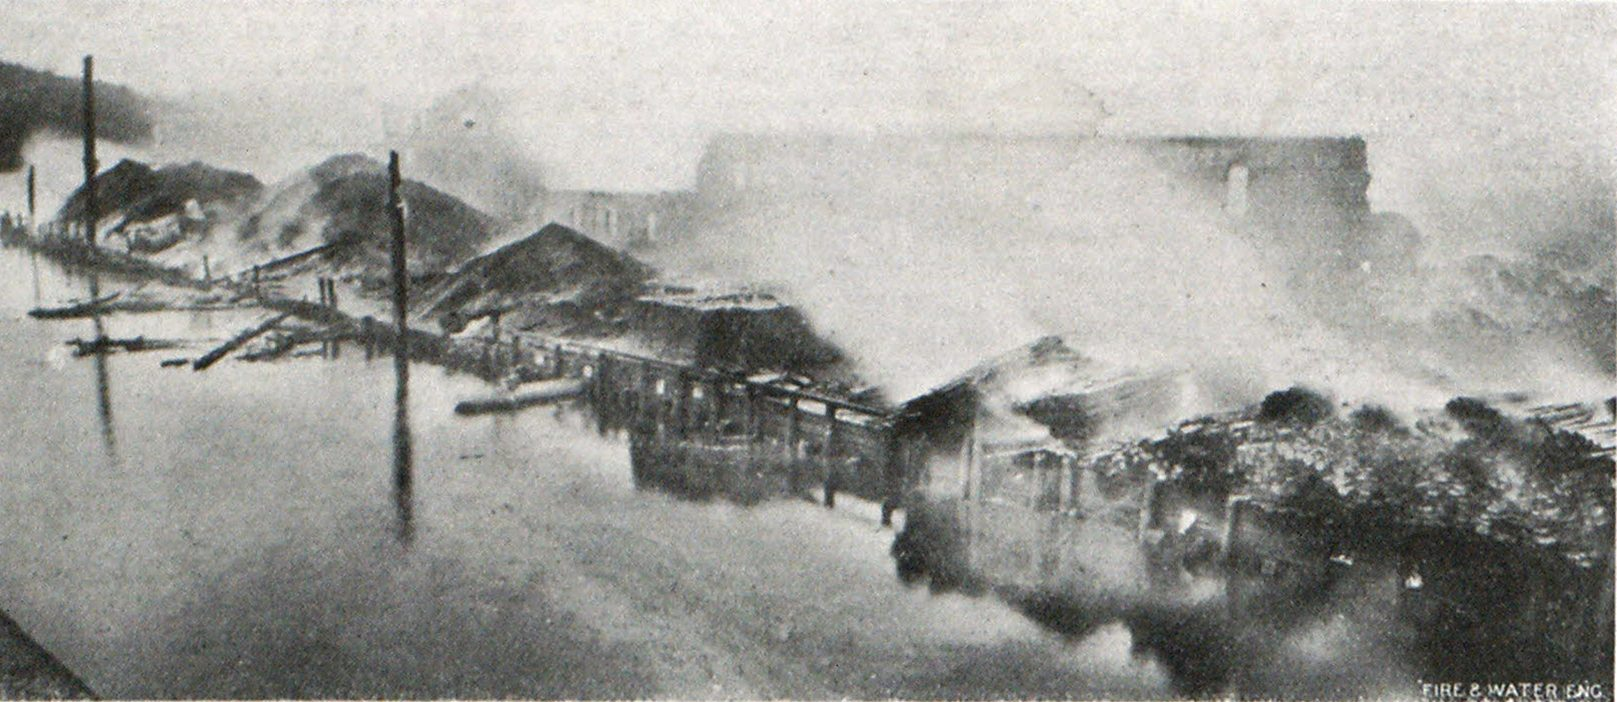 GENERAL VIEW OF WHARF FIRE EXTENDING ALONG 800 FEET OF RIVER FRONT AT NORWICH, CONN.